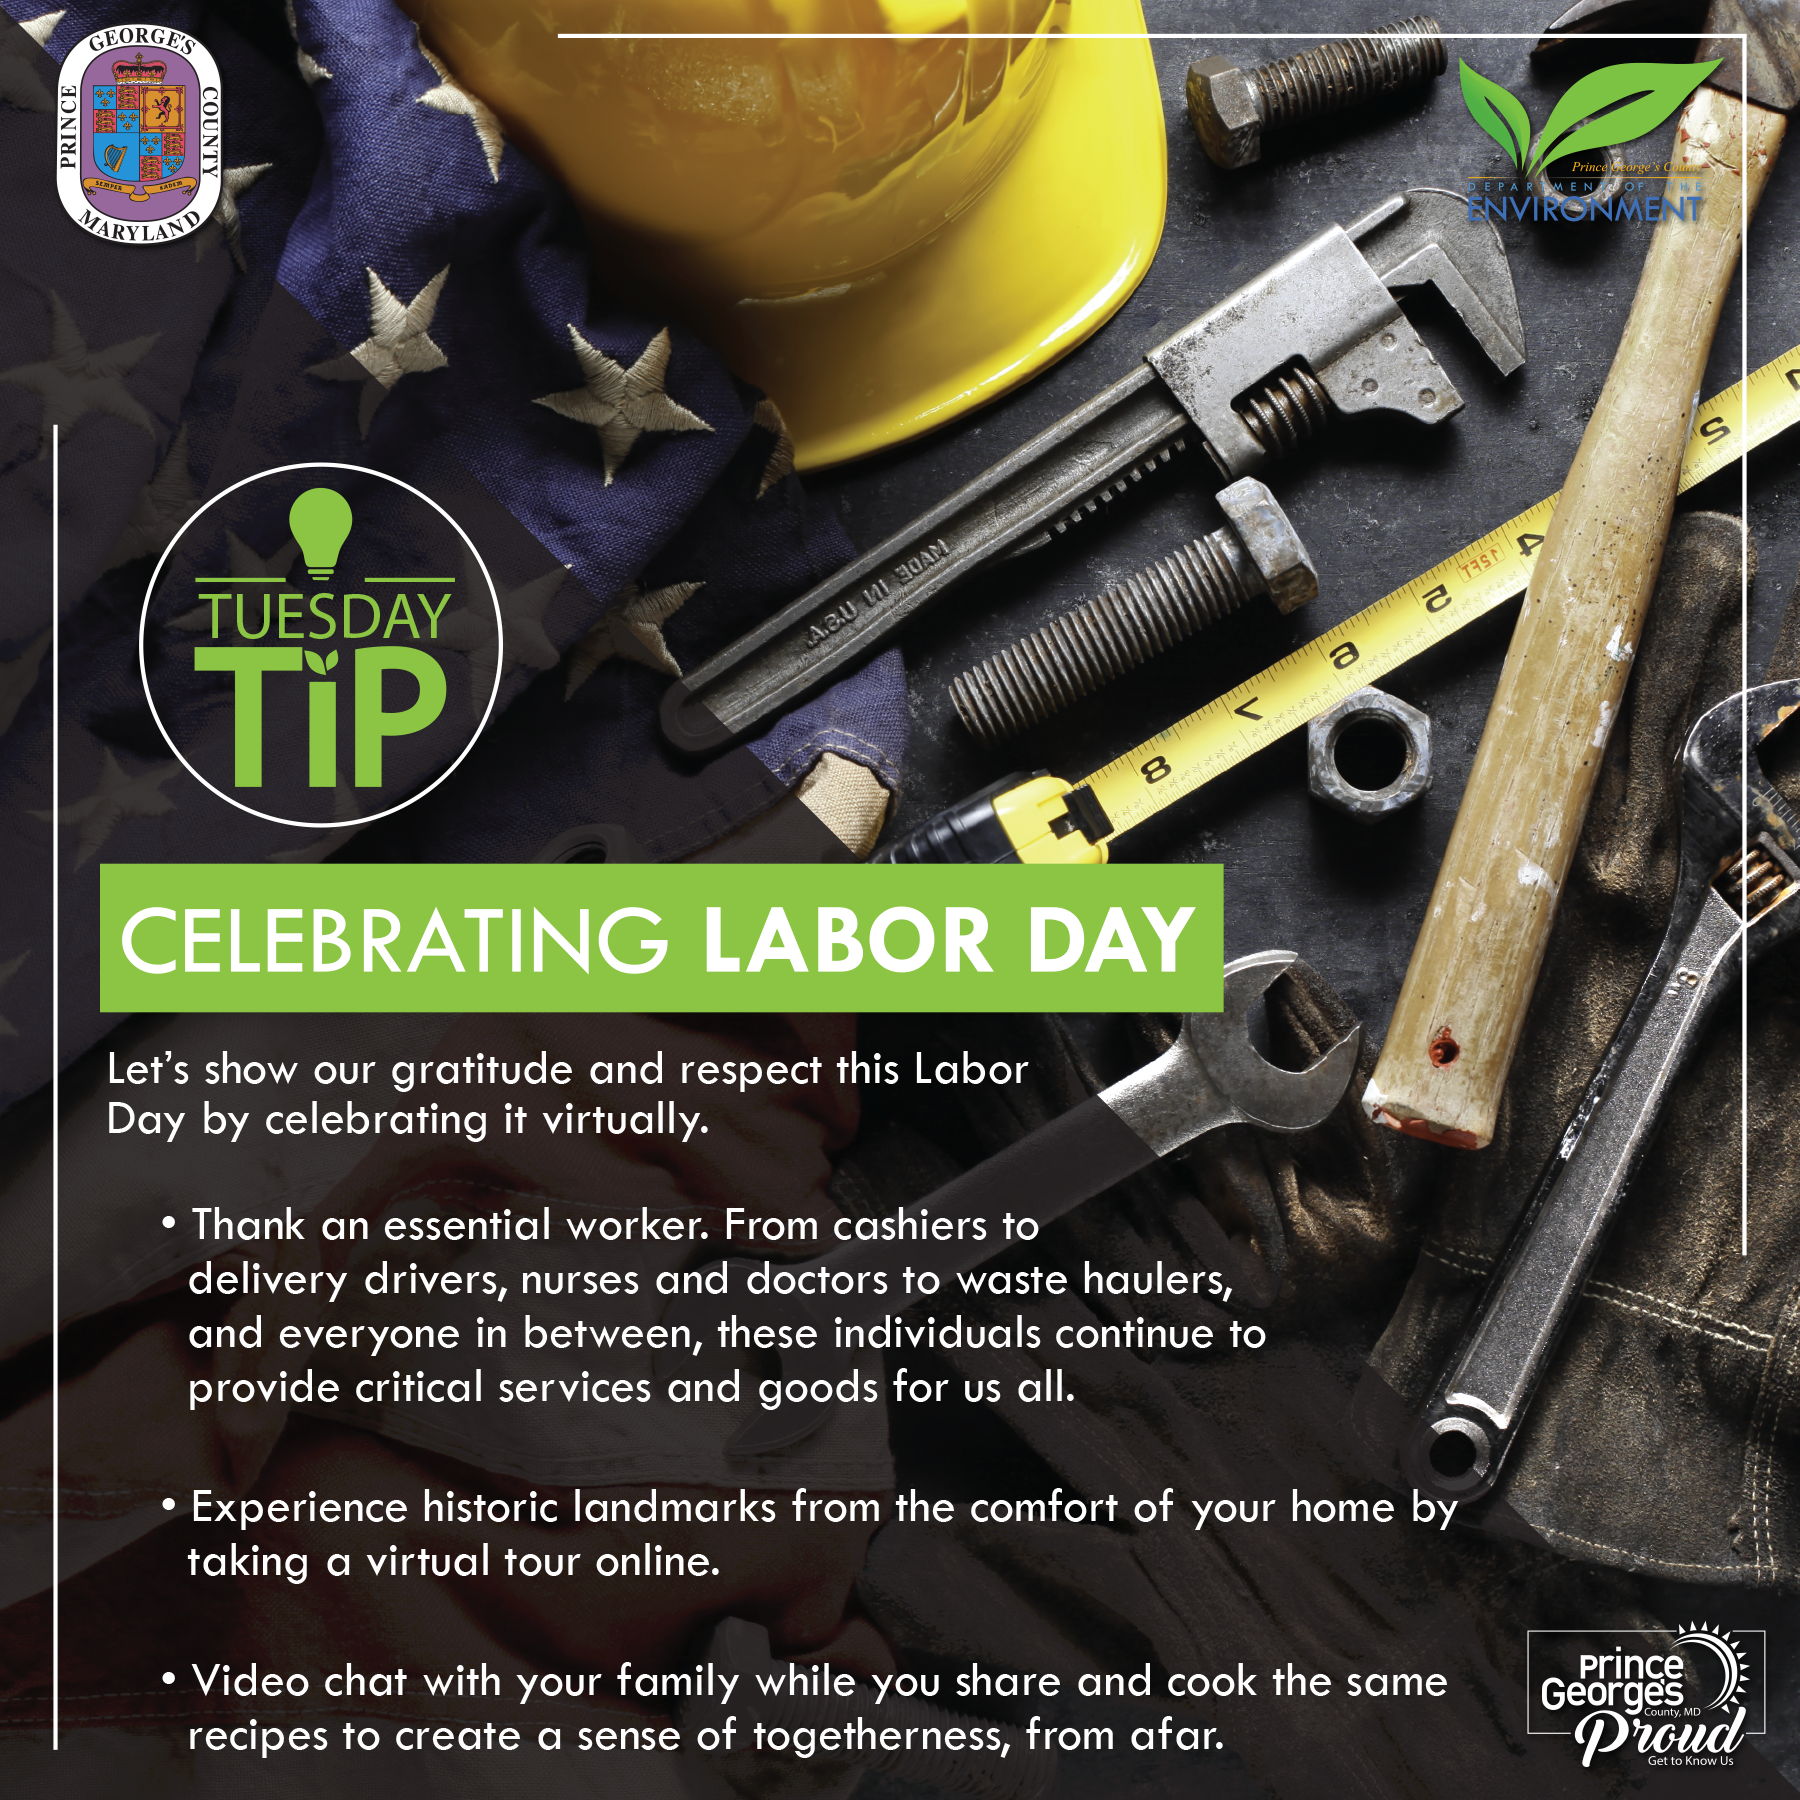 Tues tip 9.1.20 Labor Day eng